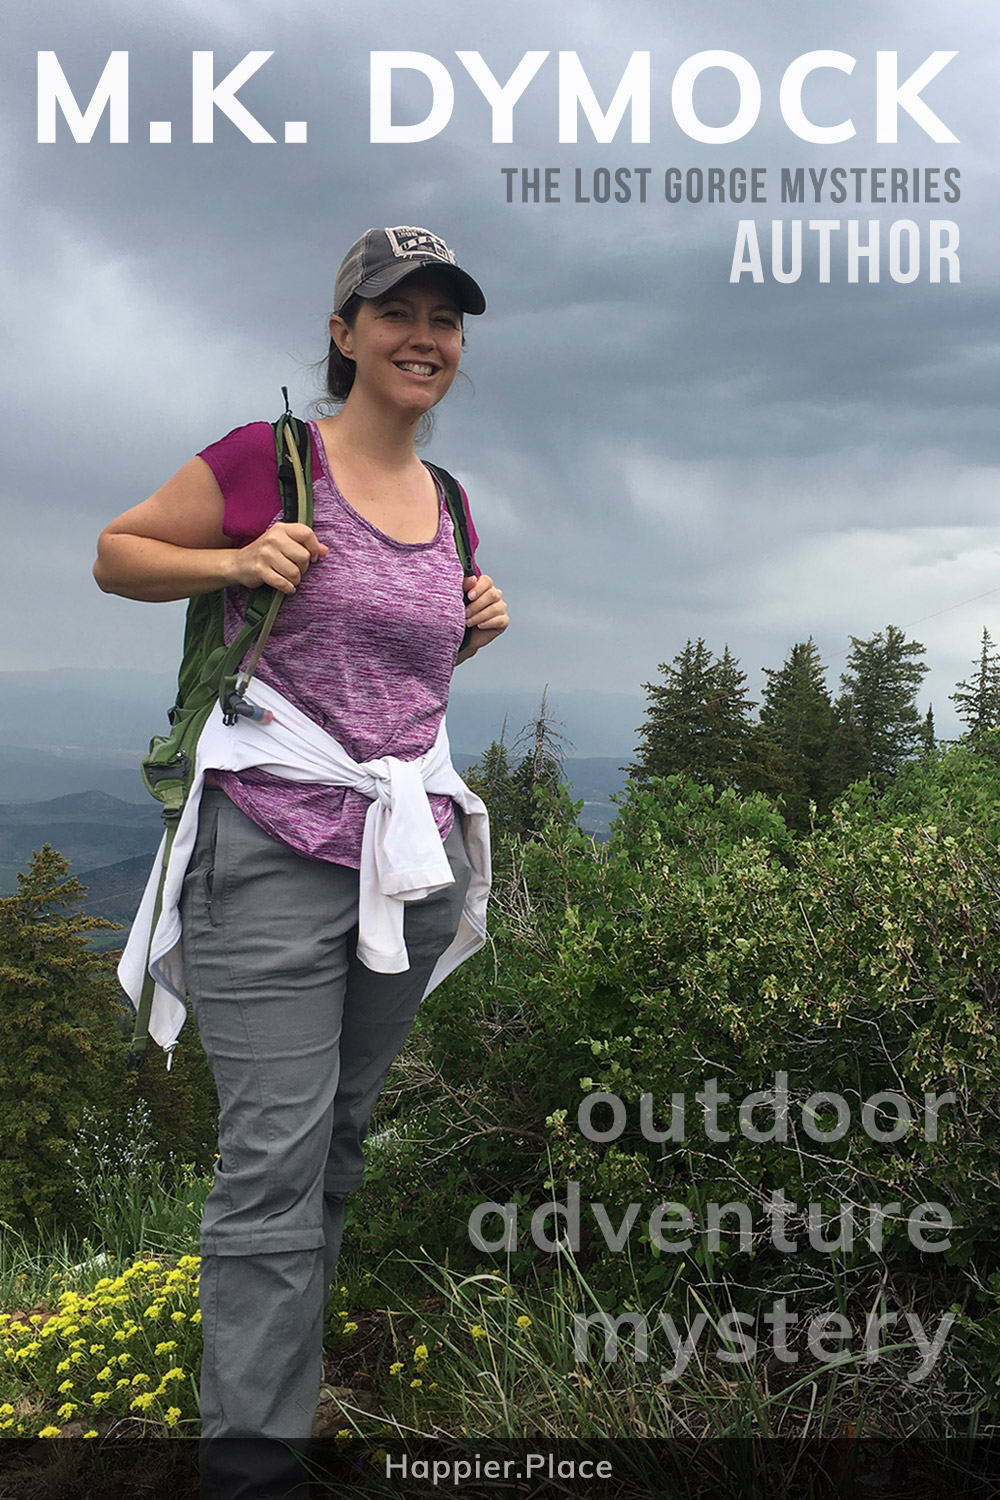 Interview with outdoor adventure mystery author M.K. Dymock, creator of the Lost Gorge Mysteries.